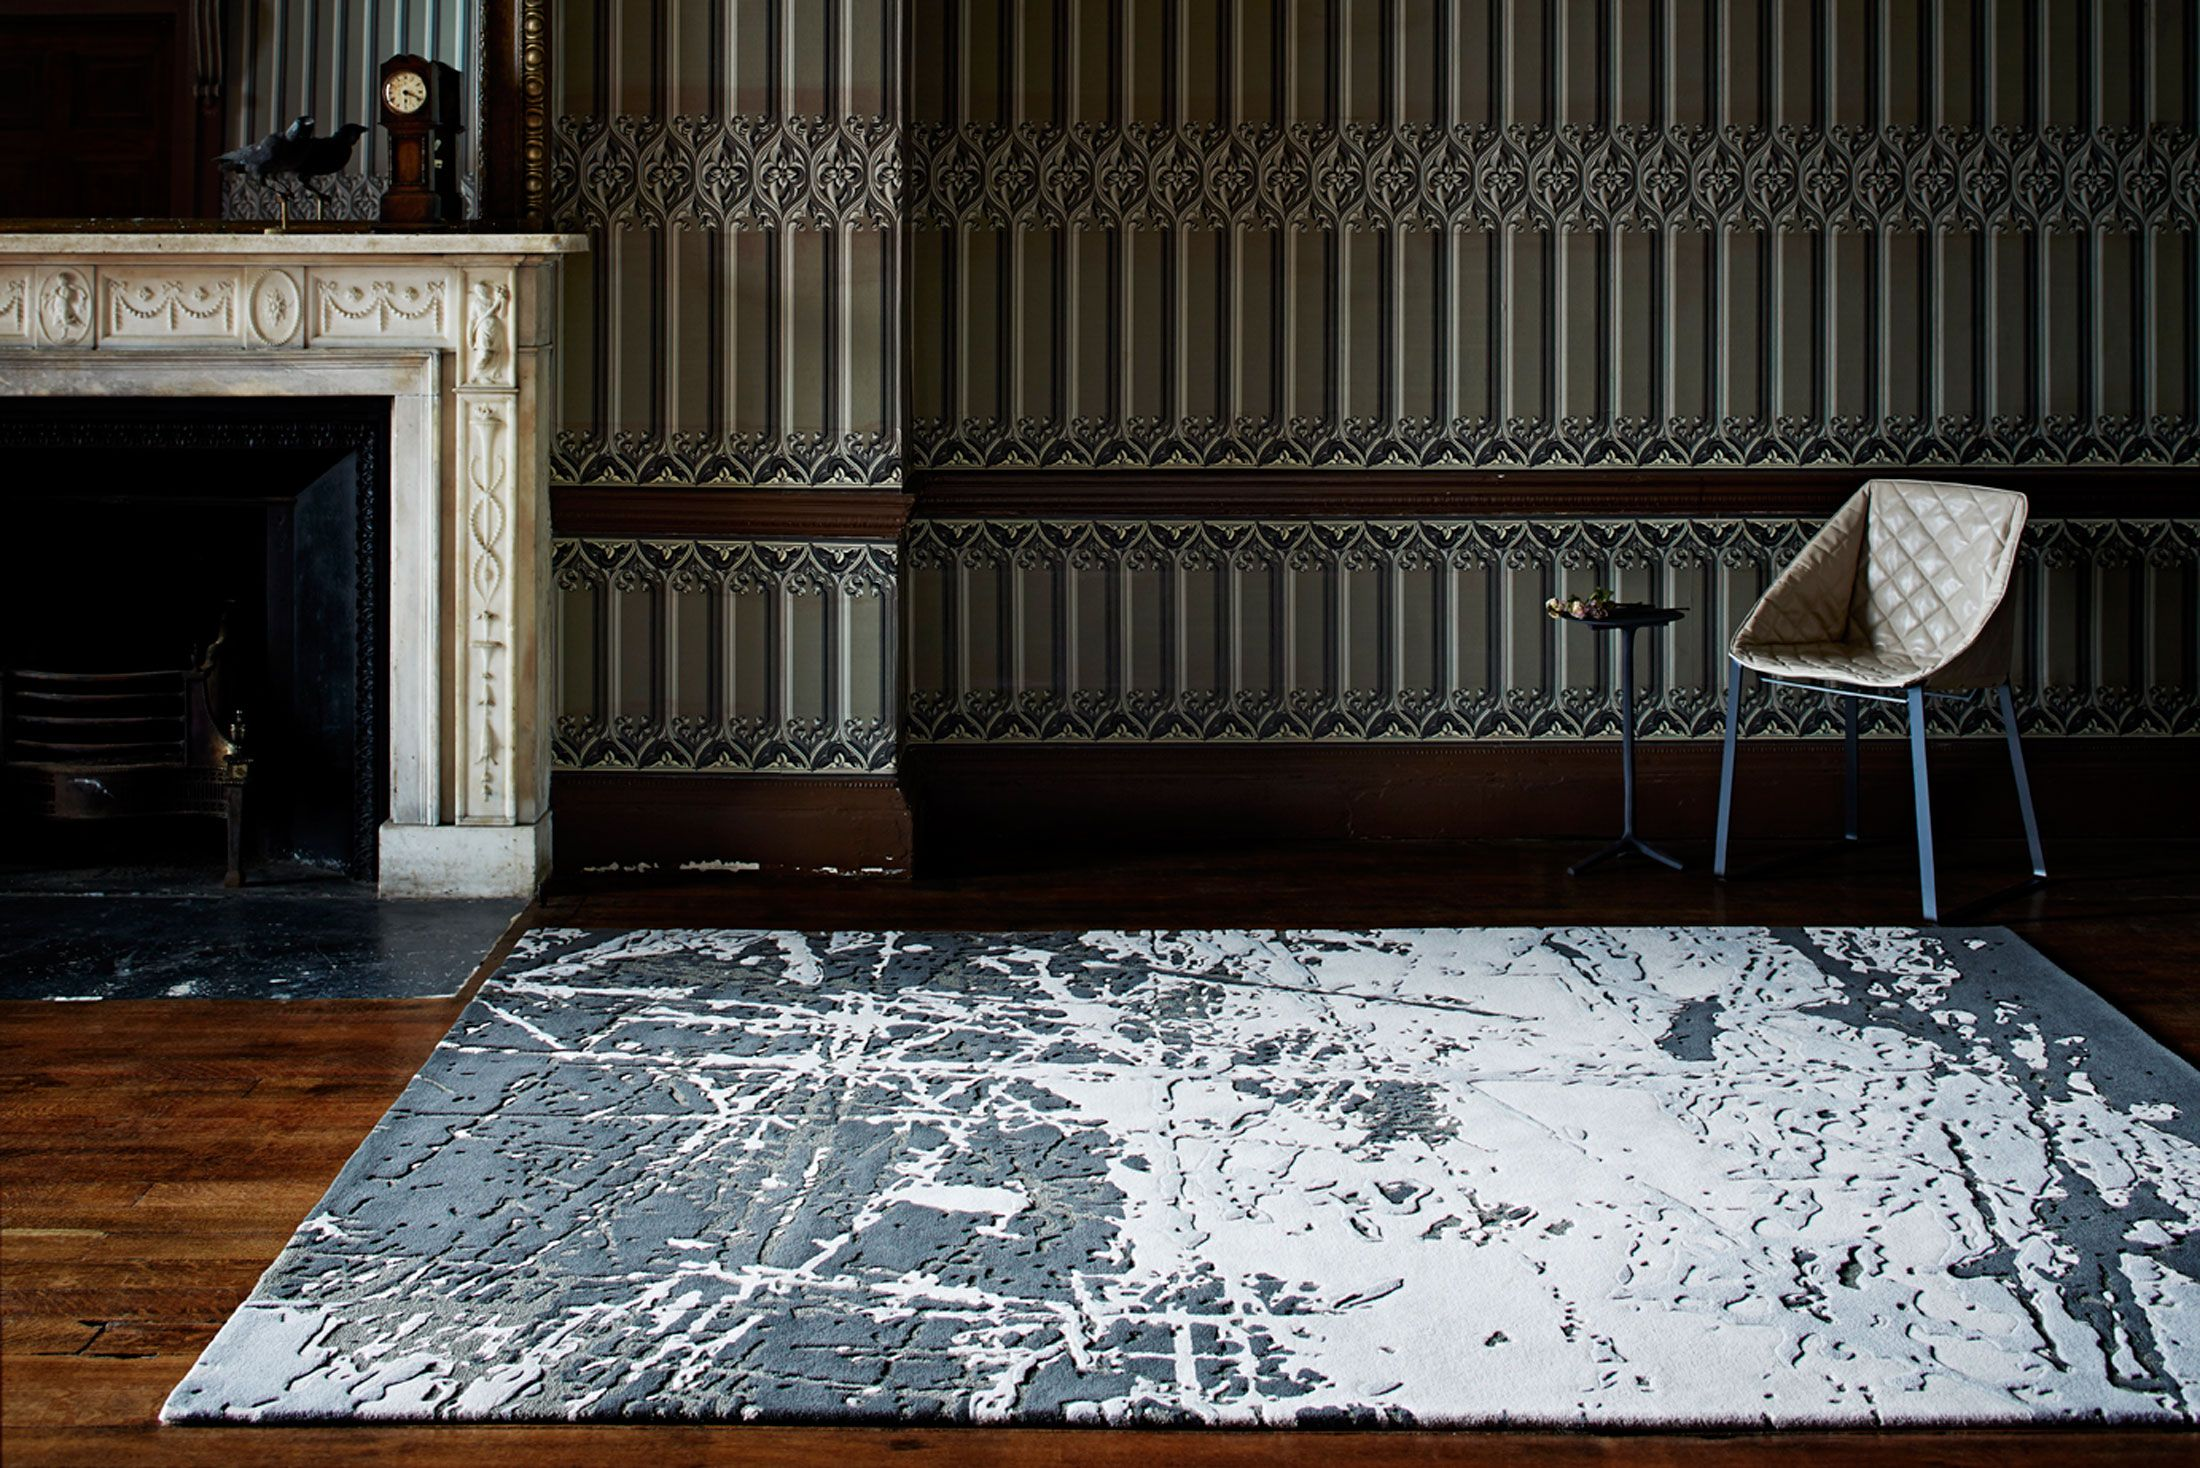 Scratched Rugs On Carpet Store Design Interior Decor